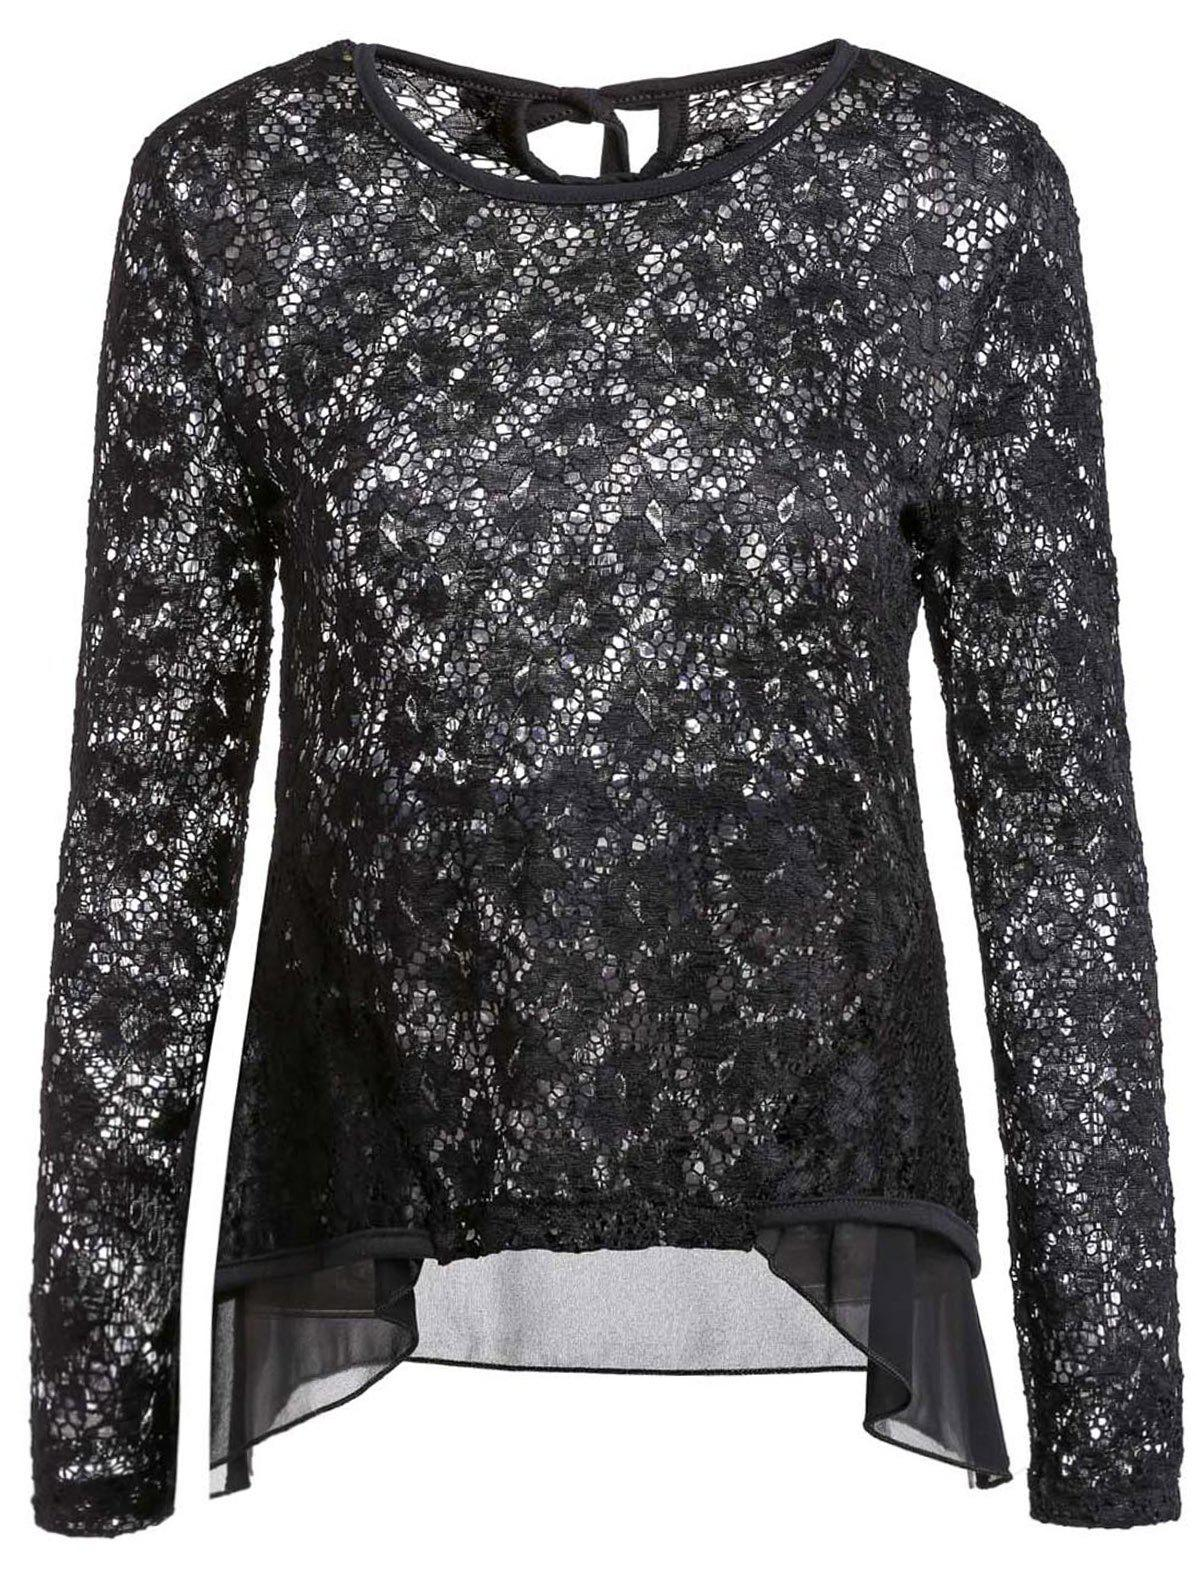 Sexy Long Sleeve Scoop Neck Lace Ruffled Blouse For Women - BLACK L